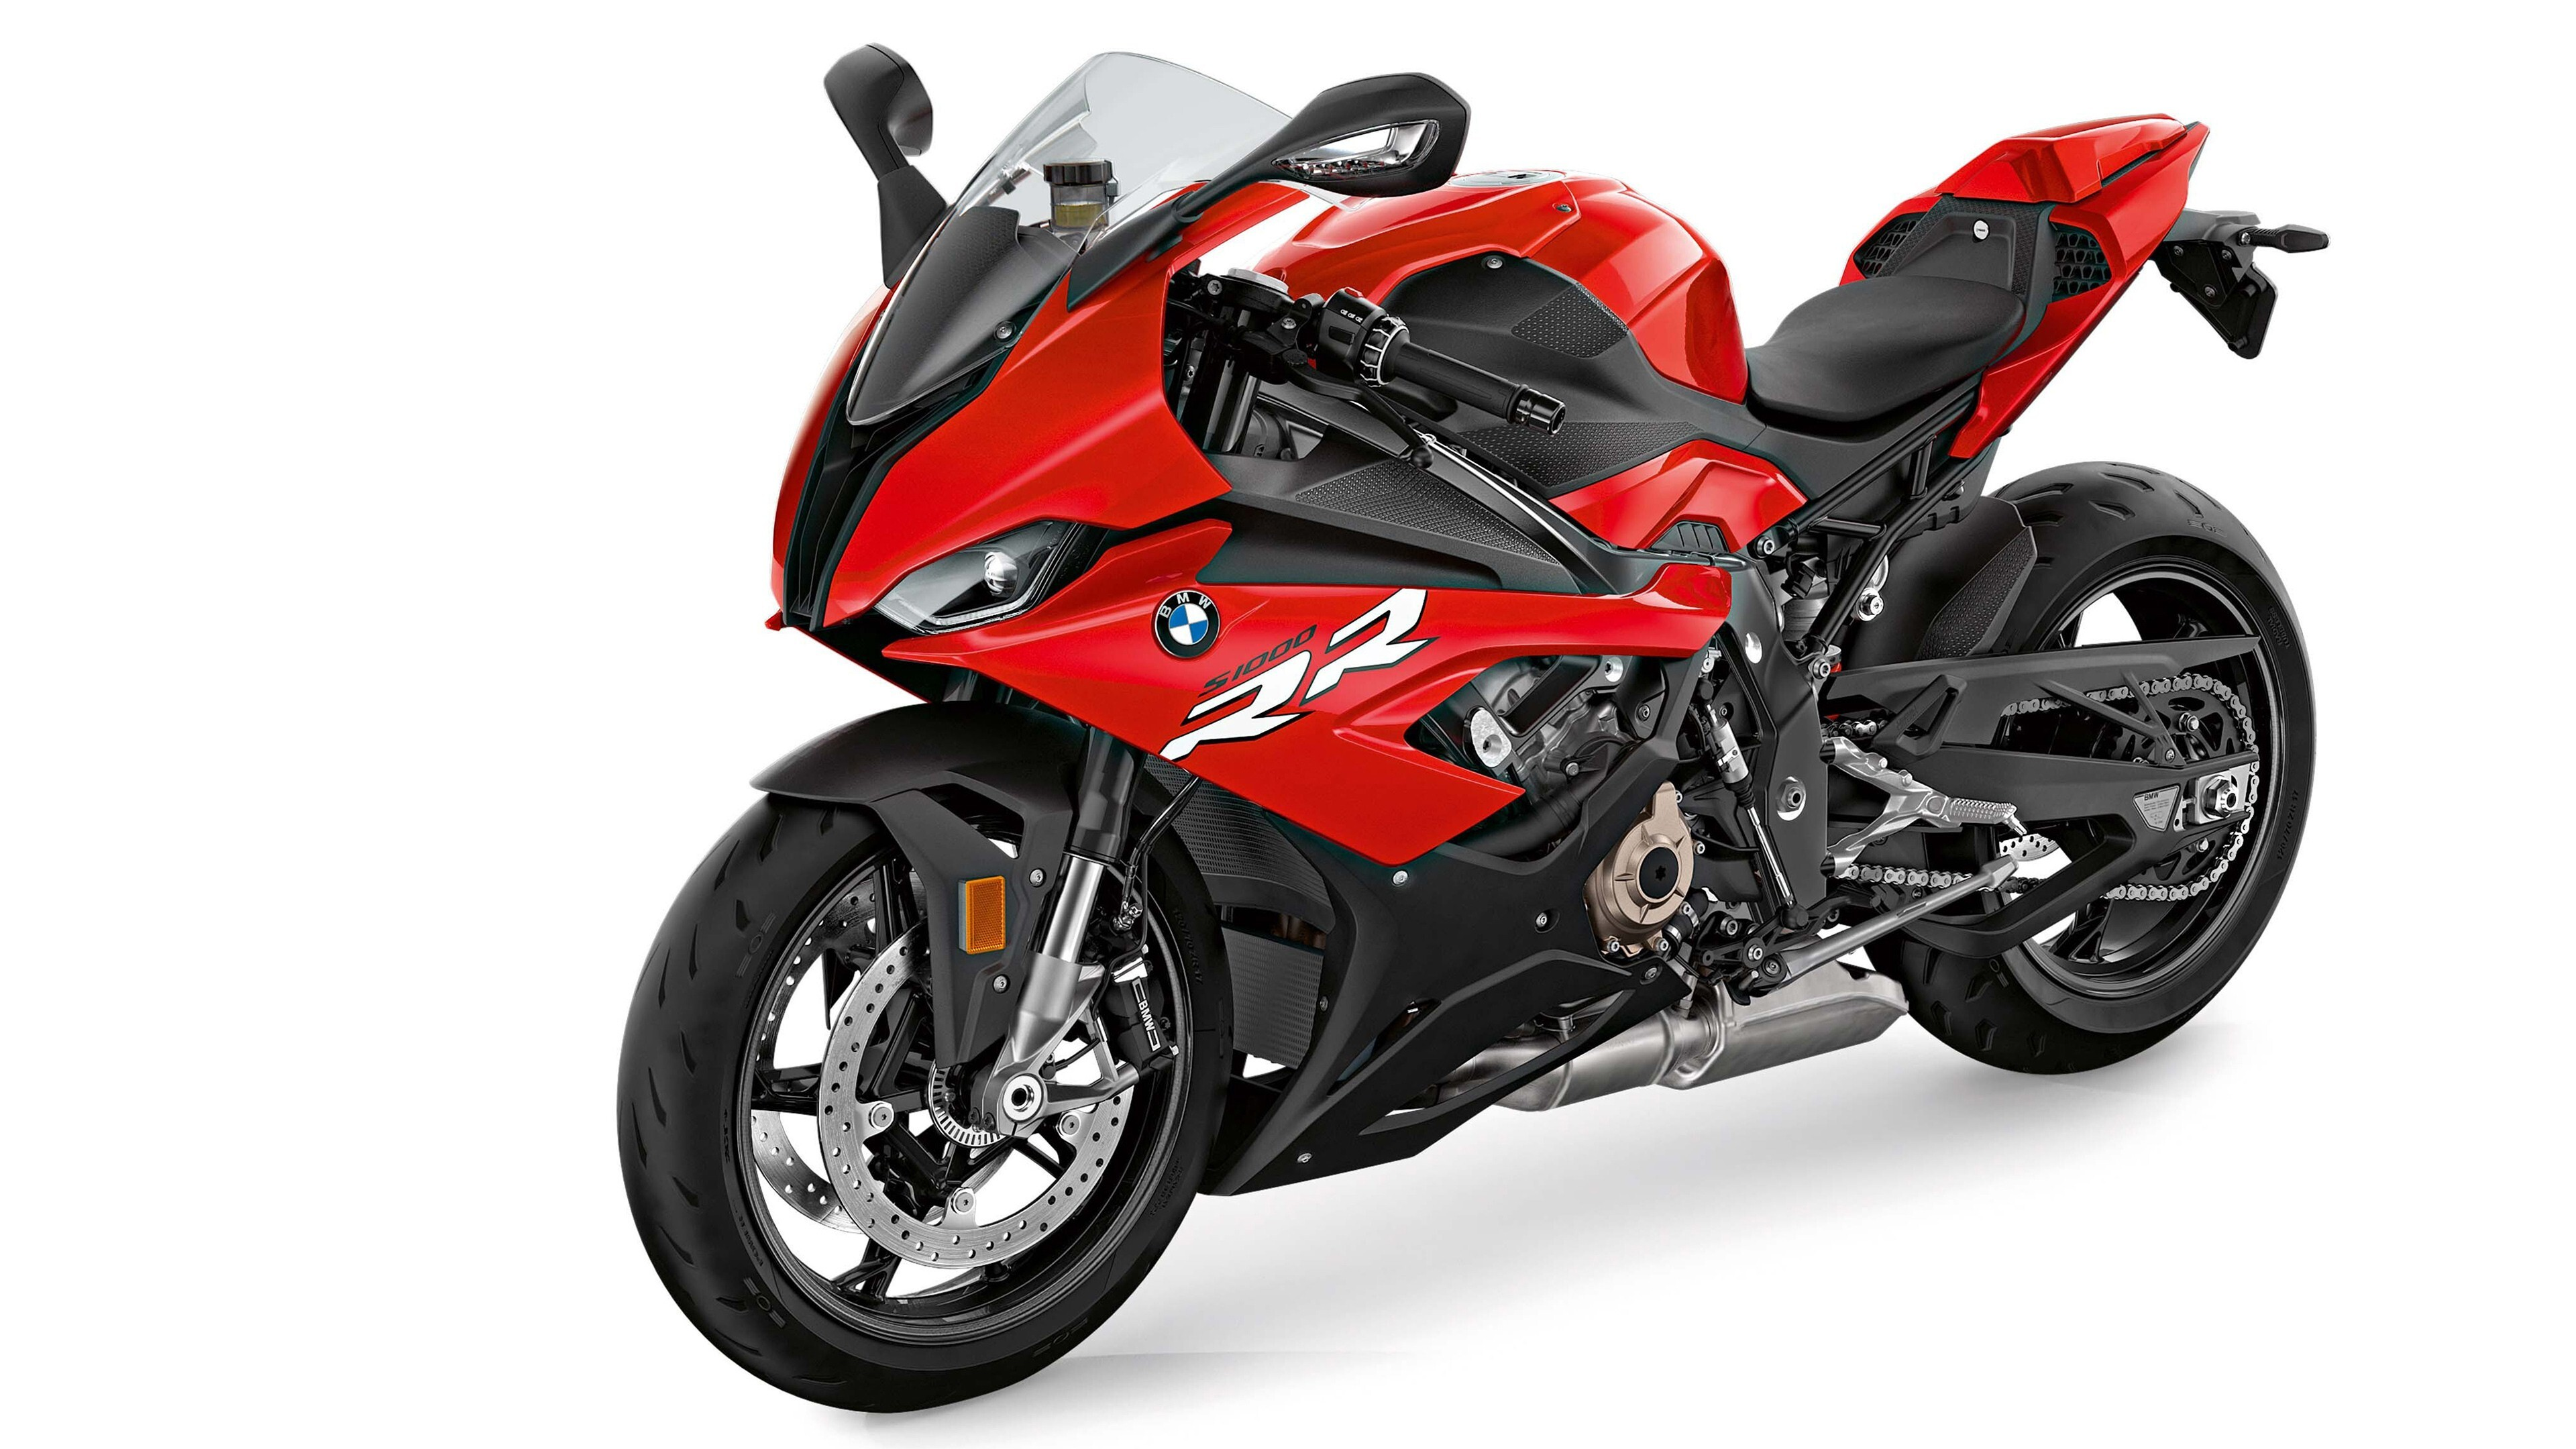 4k Image Of 2019 Bmw S1000rr Red Motorcycle Hd Wallpapers